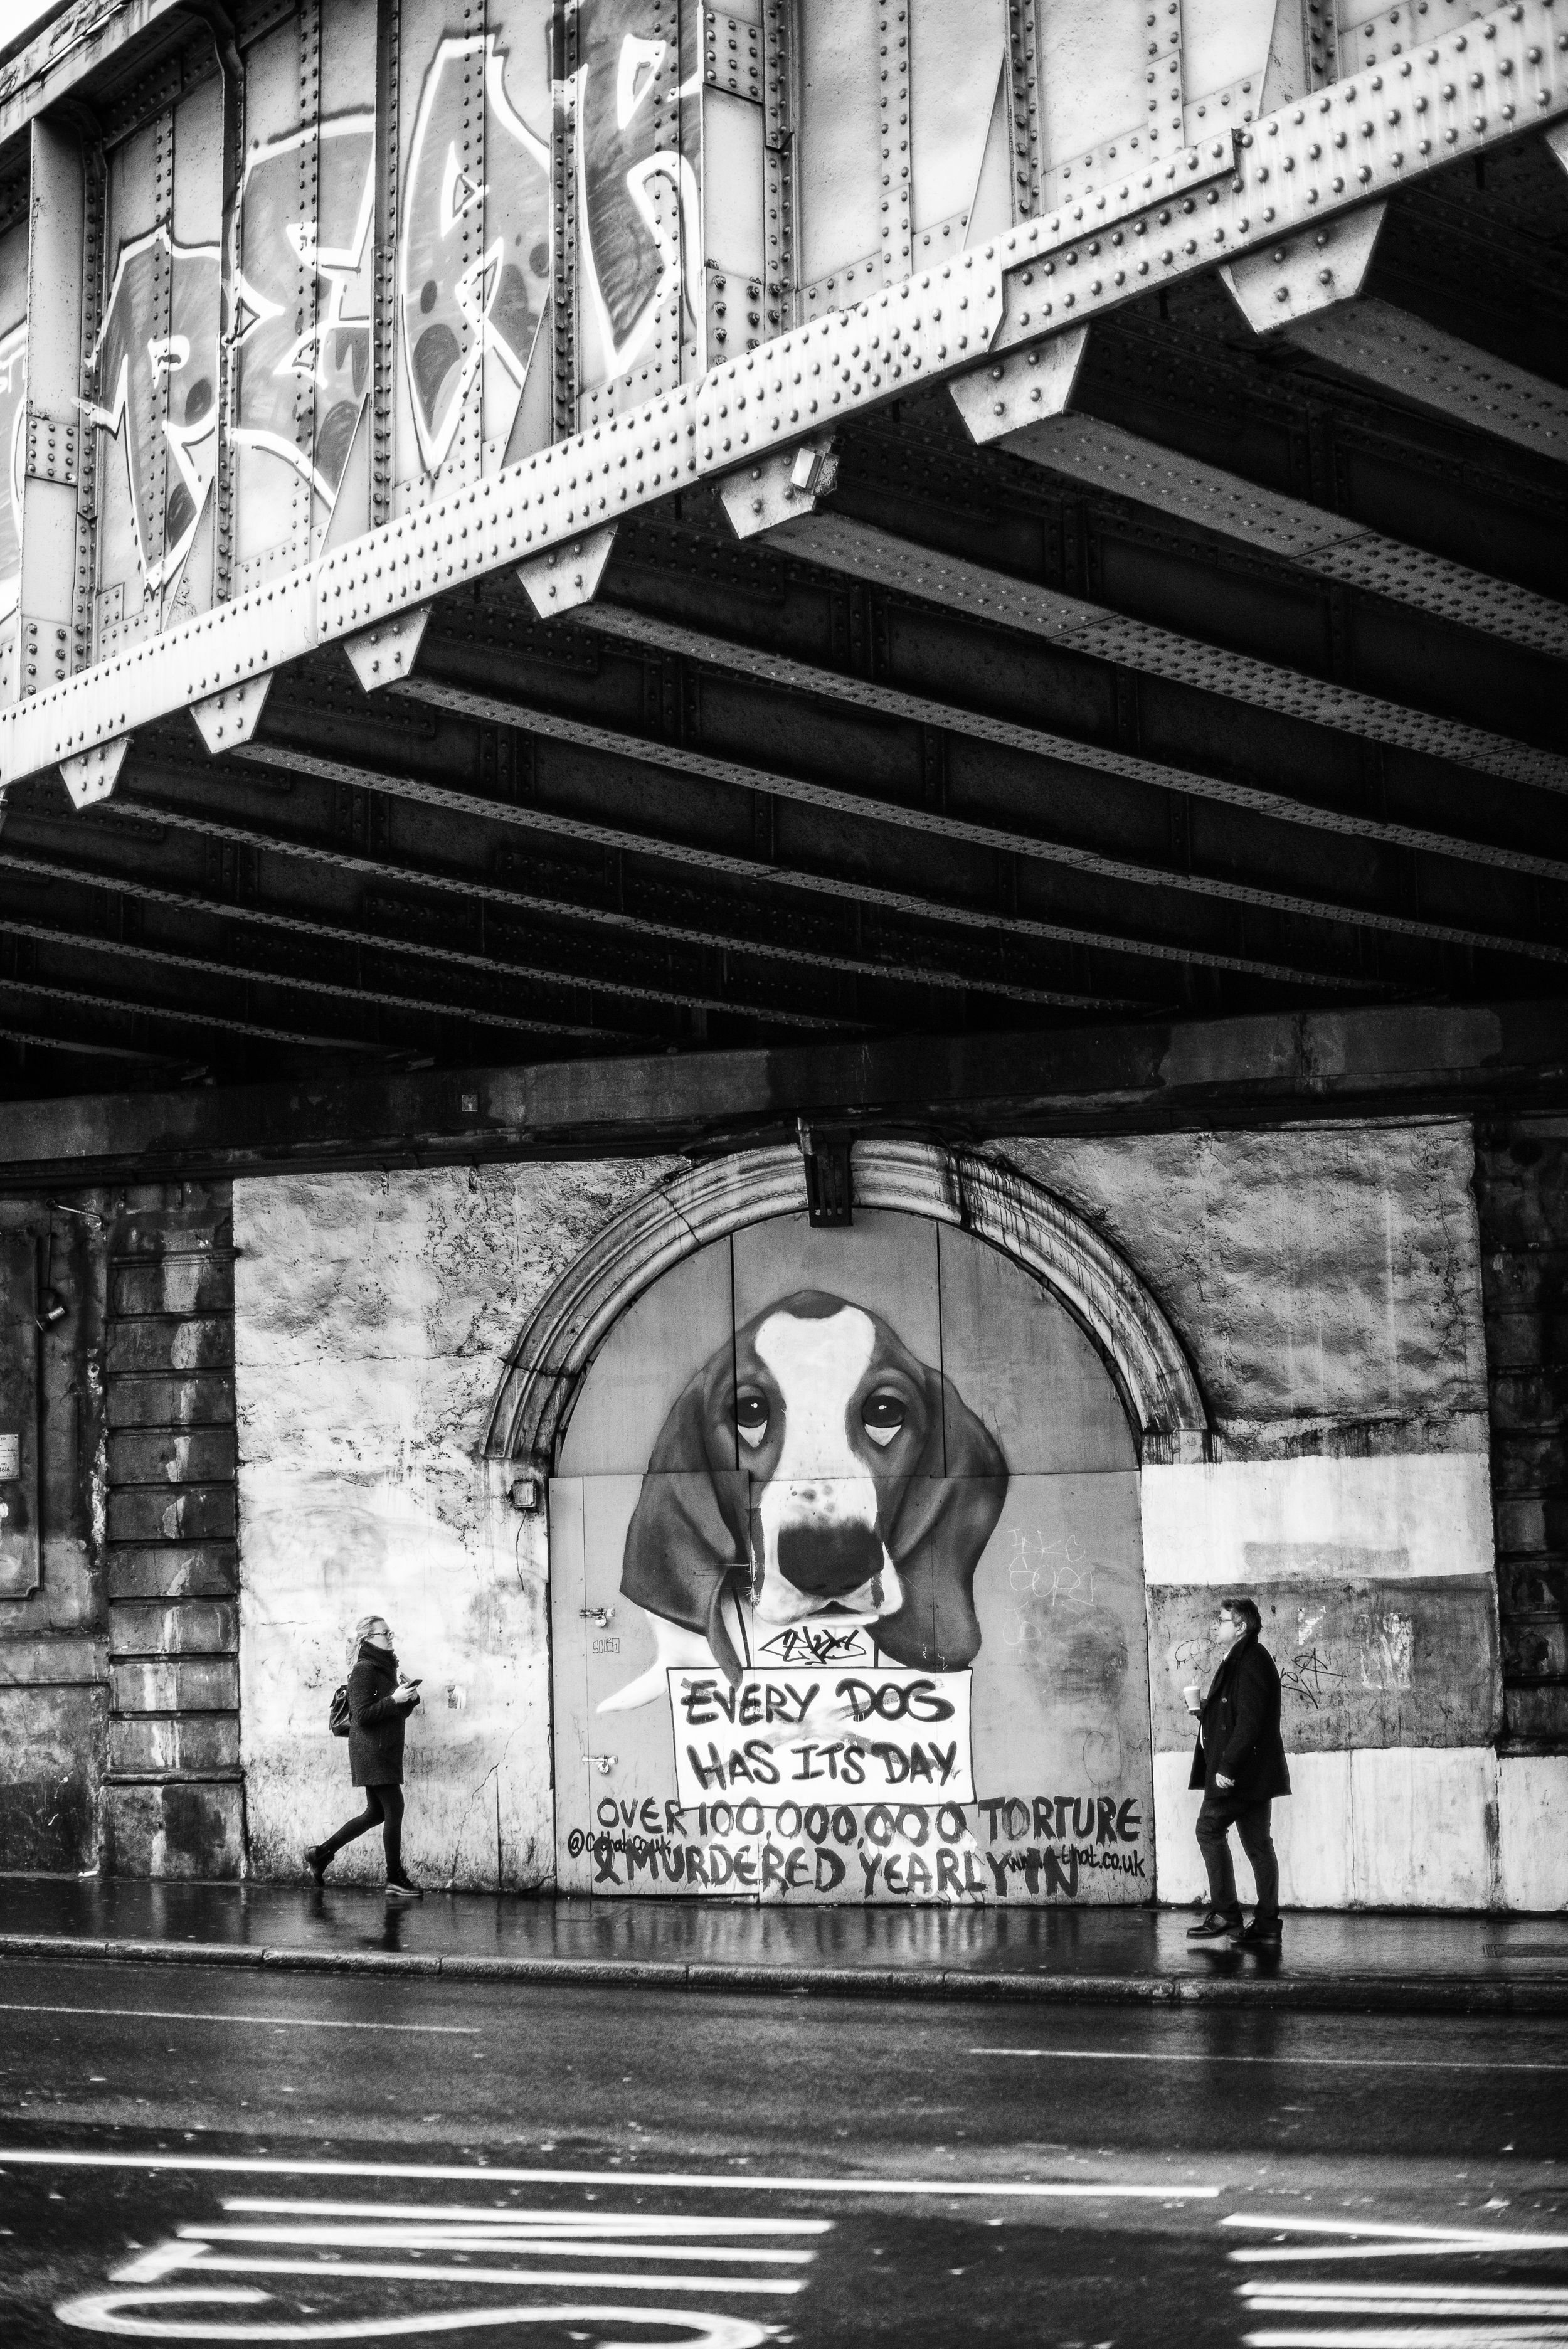 Grafitti under a bridge in London of a beagle with two people approaching